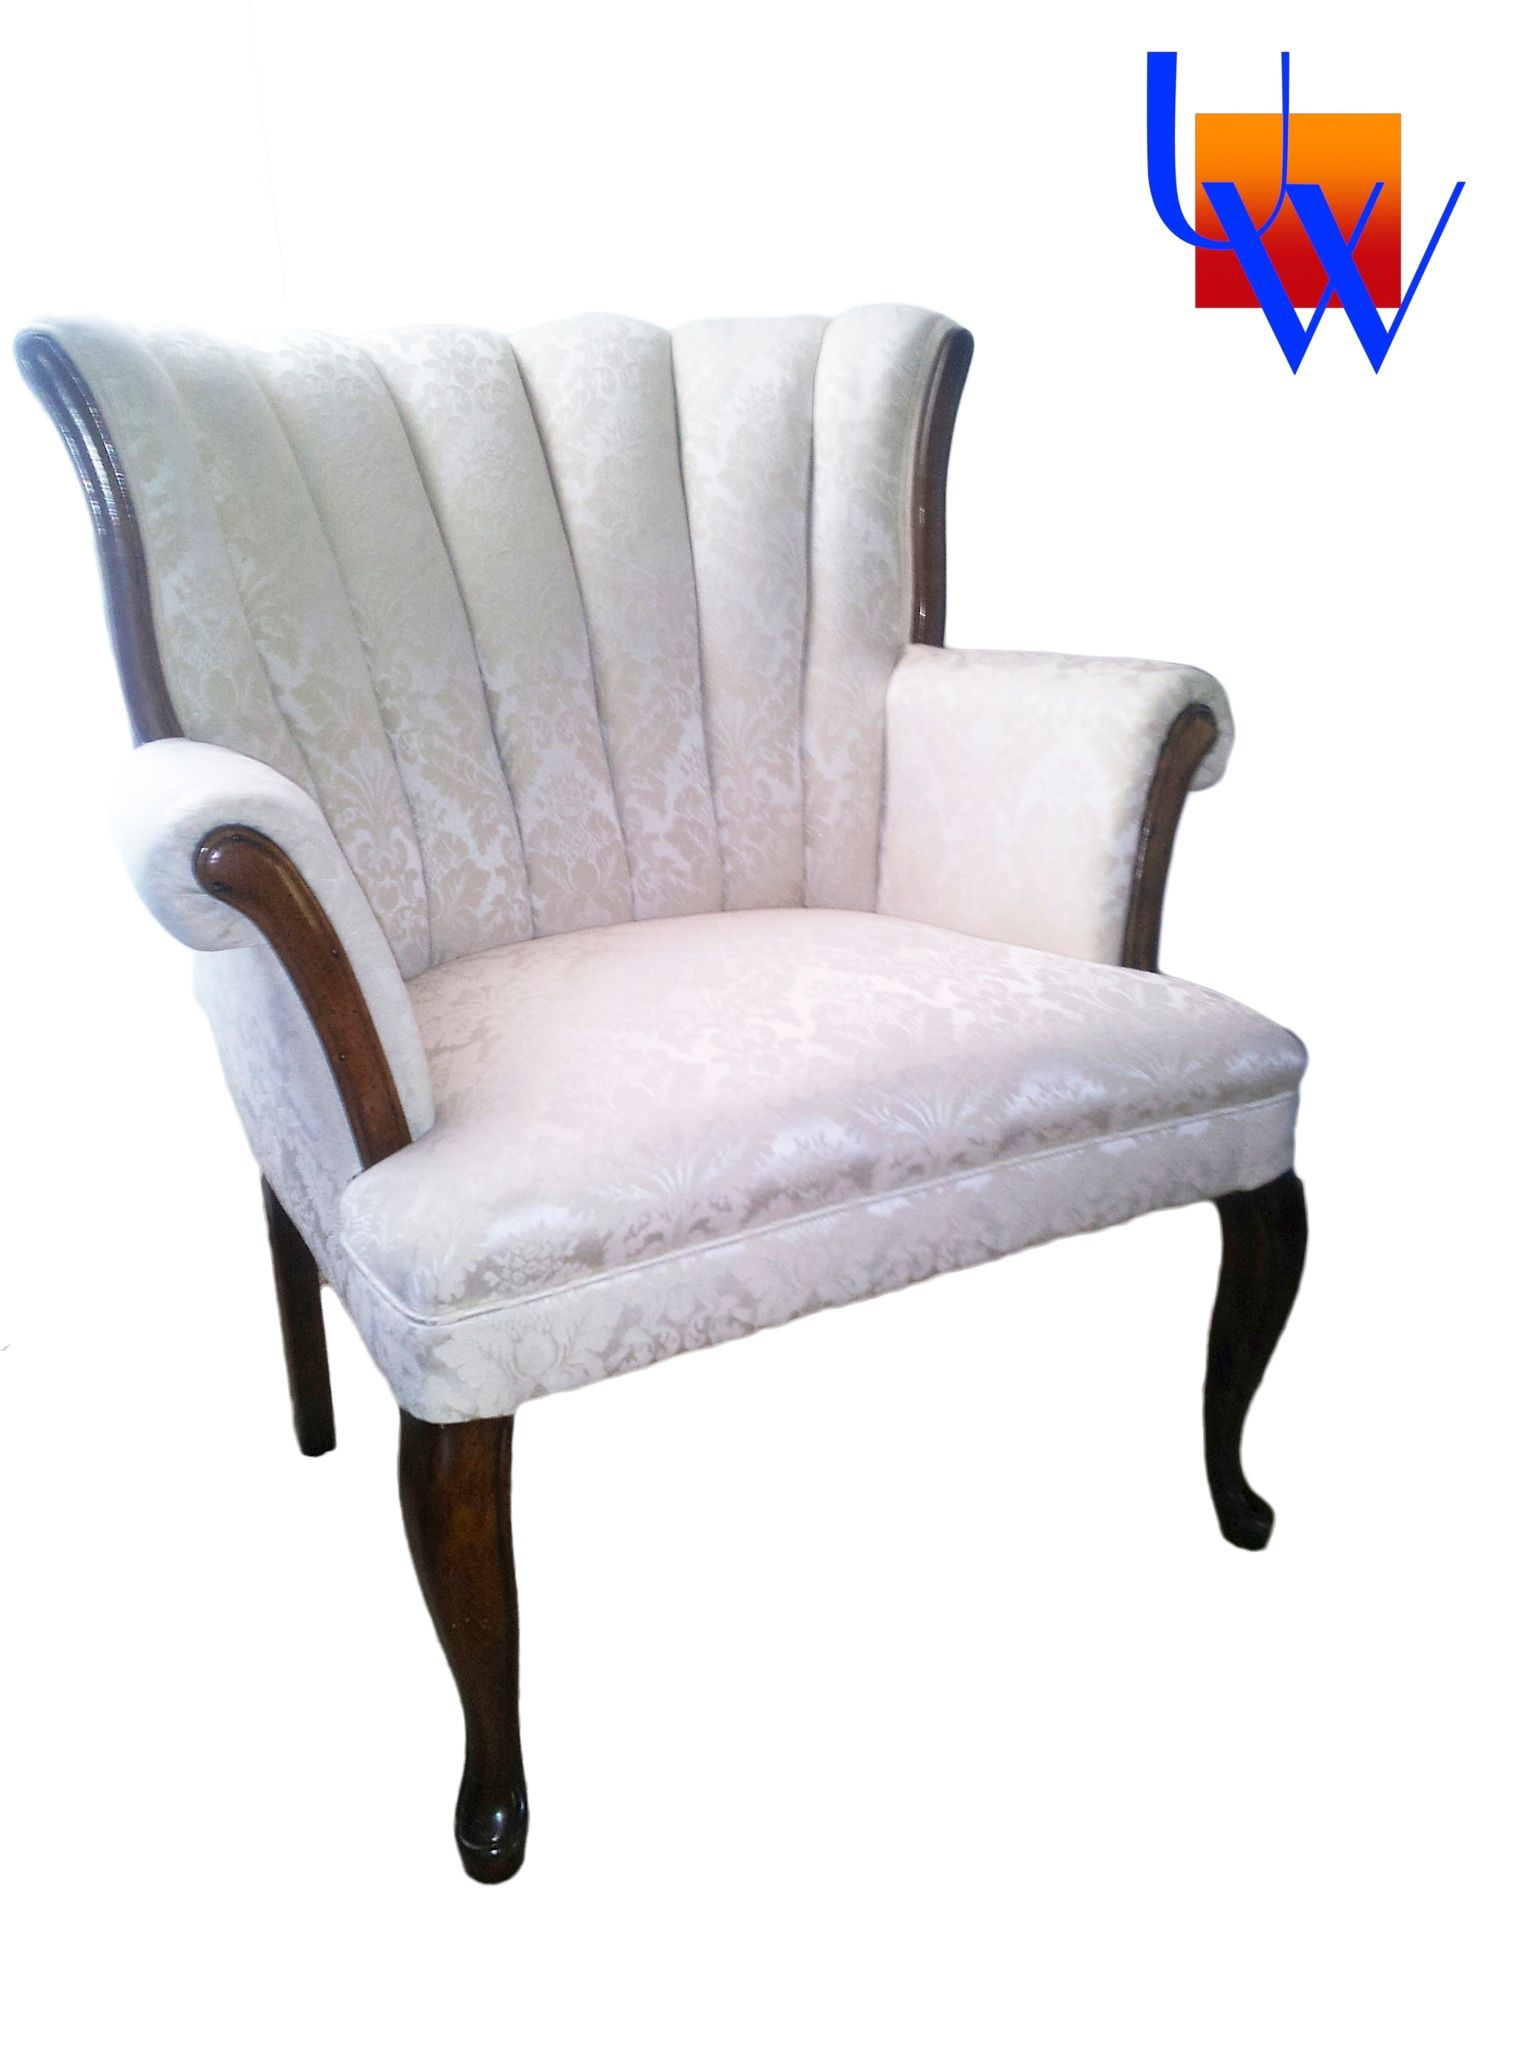 Charming Vintage Armchair By Upholstery Works. Las Vegas, NV Http://www.